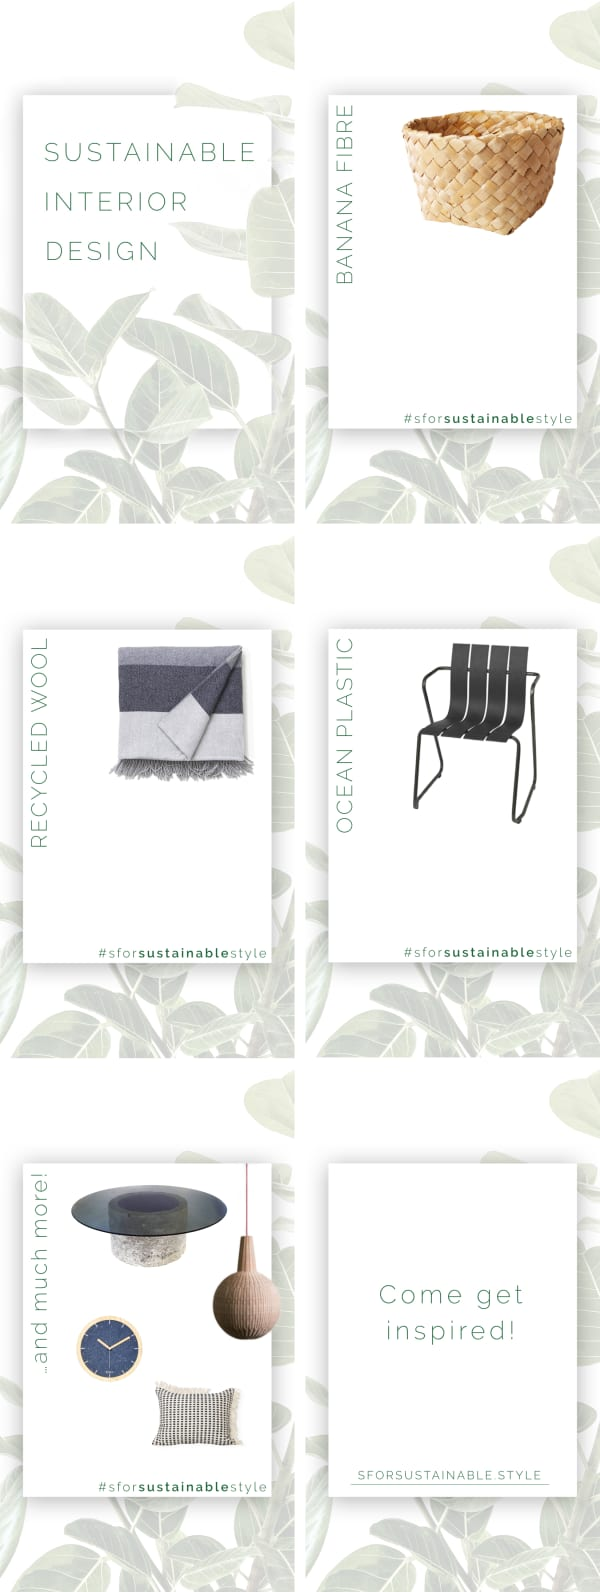 Infographic showing a few of the sustainable interior design products featured on SforSustainable: a banana fibre basket, a recycled wool blanket, and an ocean plastic chair